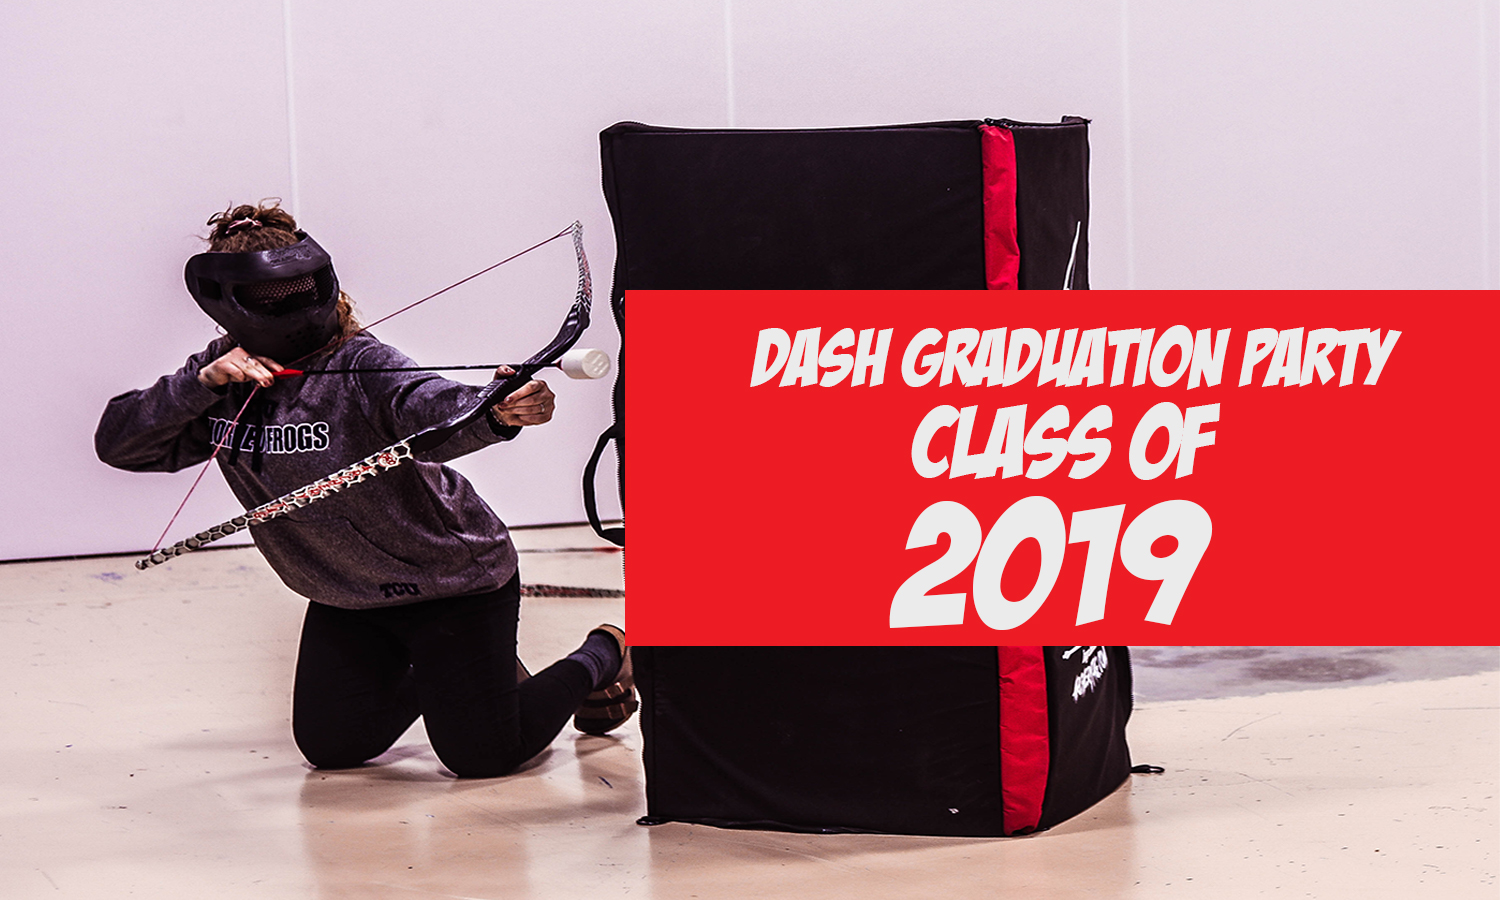 DASH Graduation Party